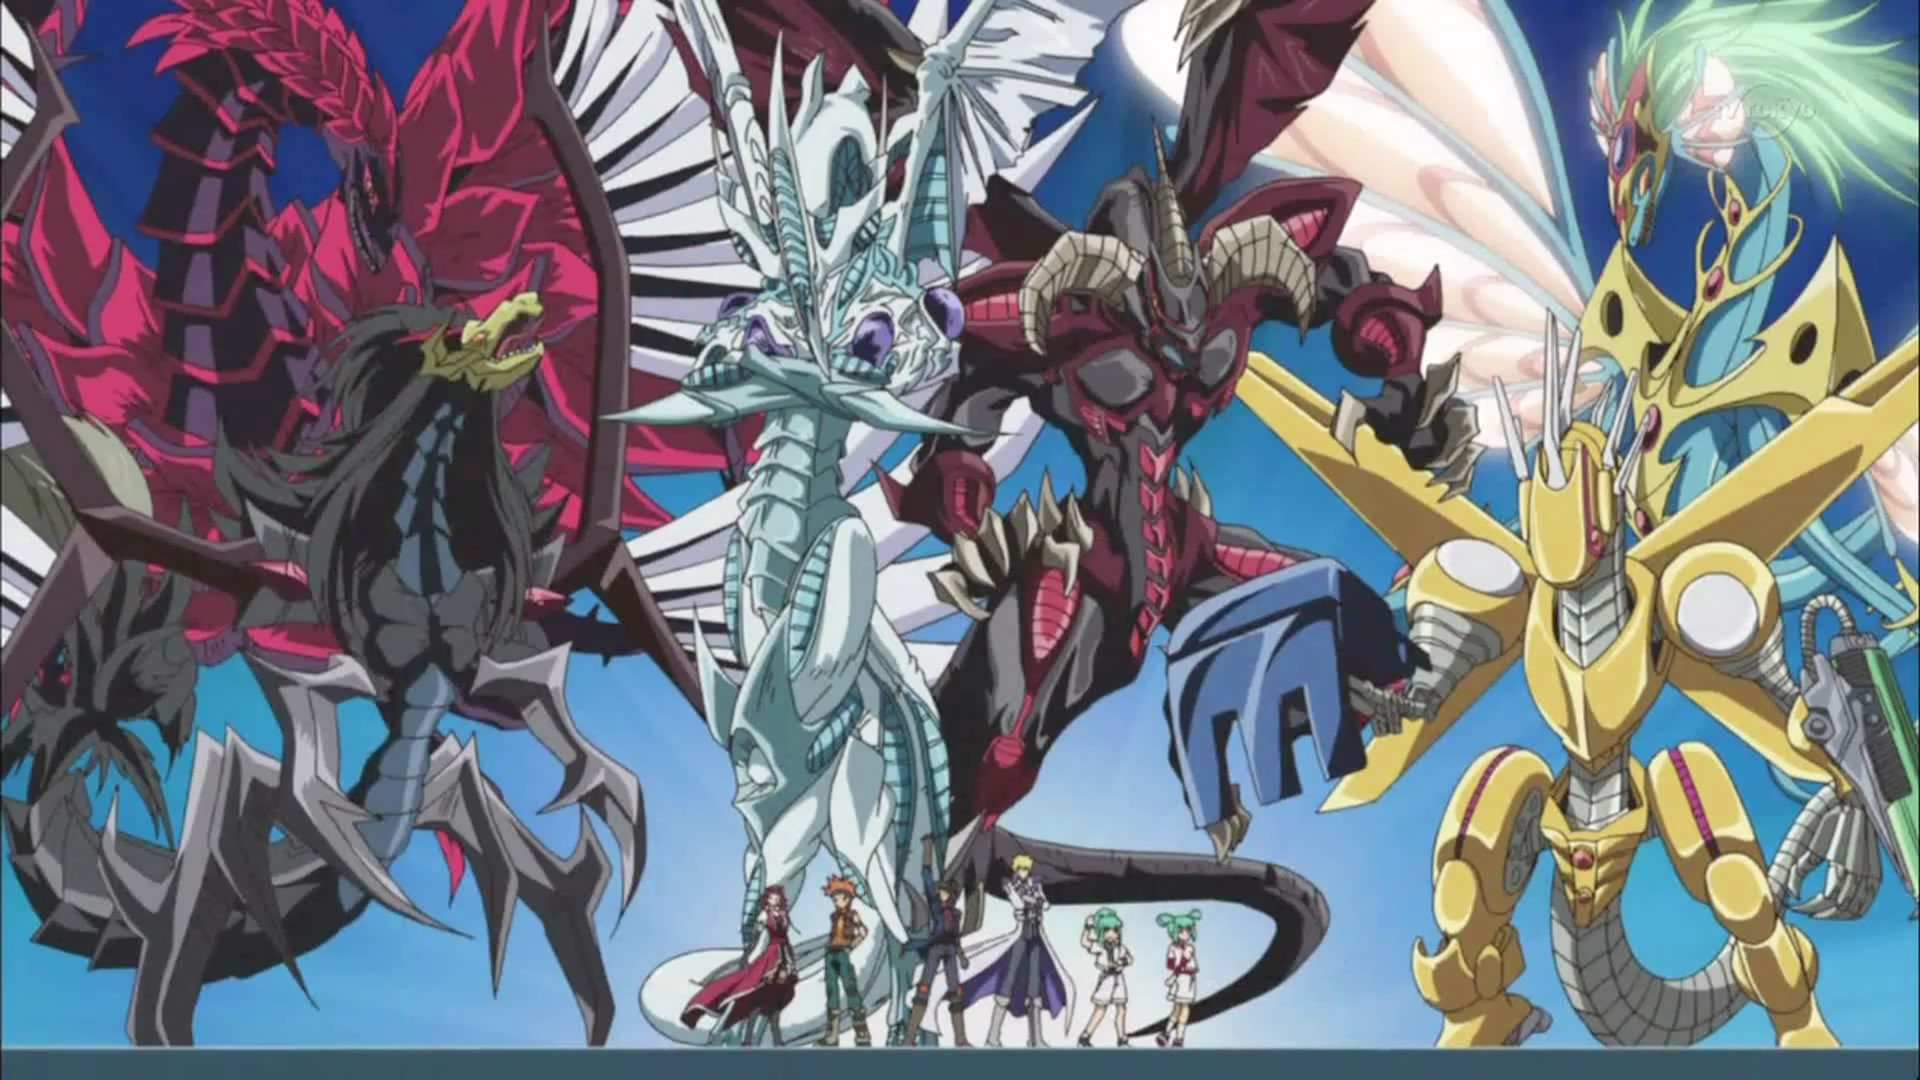 Yu gi oh 5Ds Signer Dragons by samethernet 1920x1080